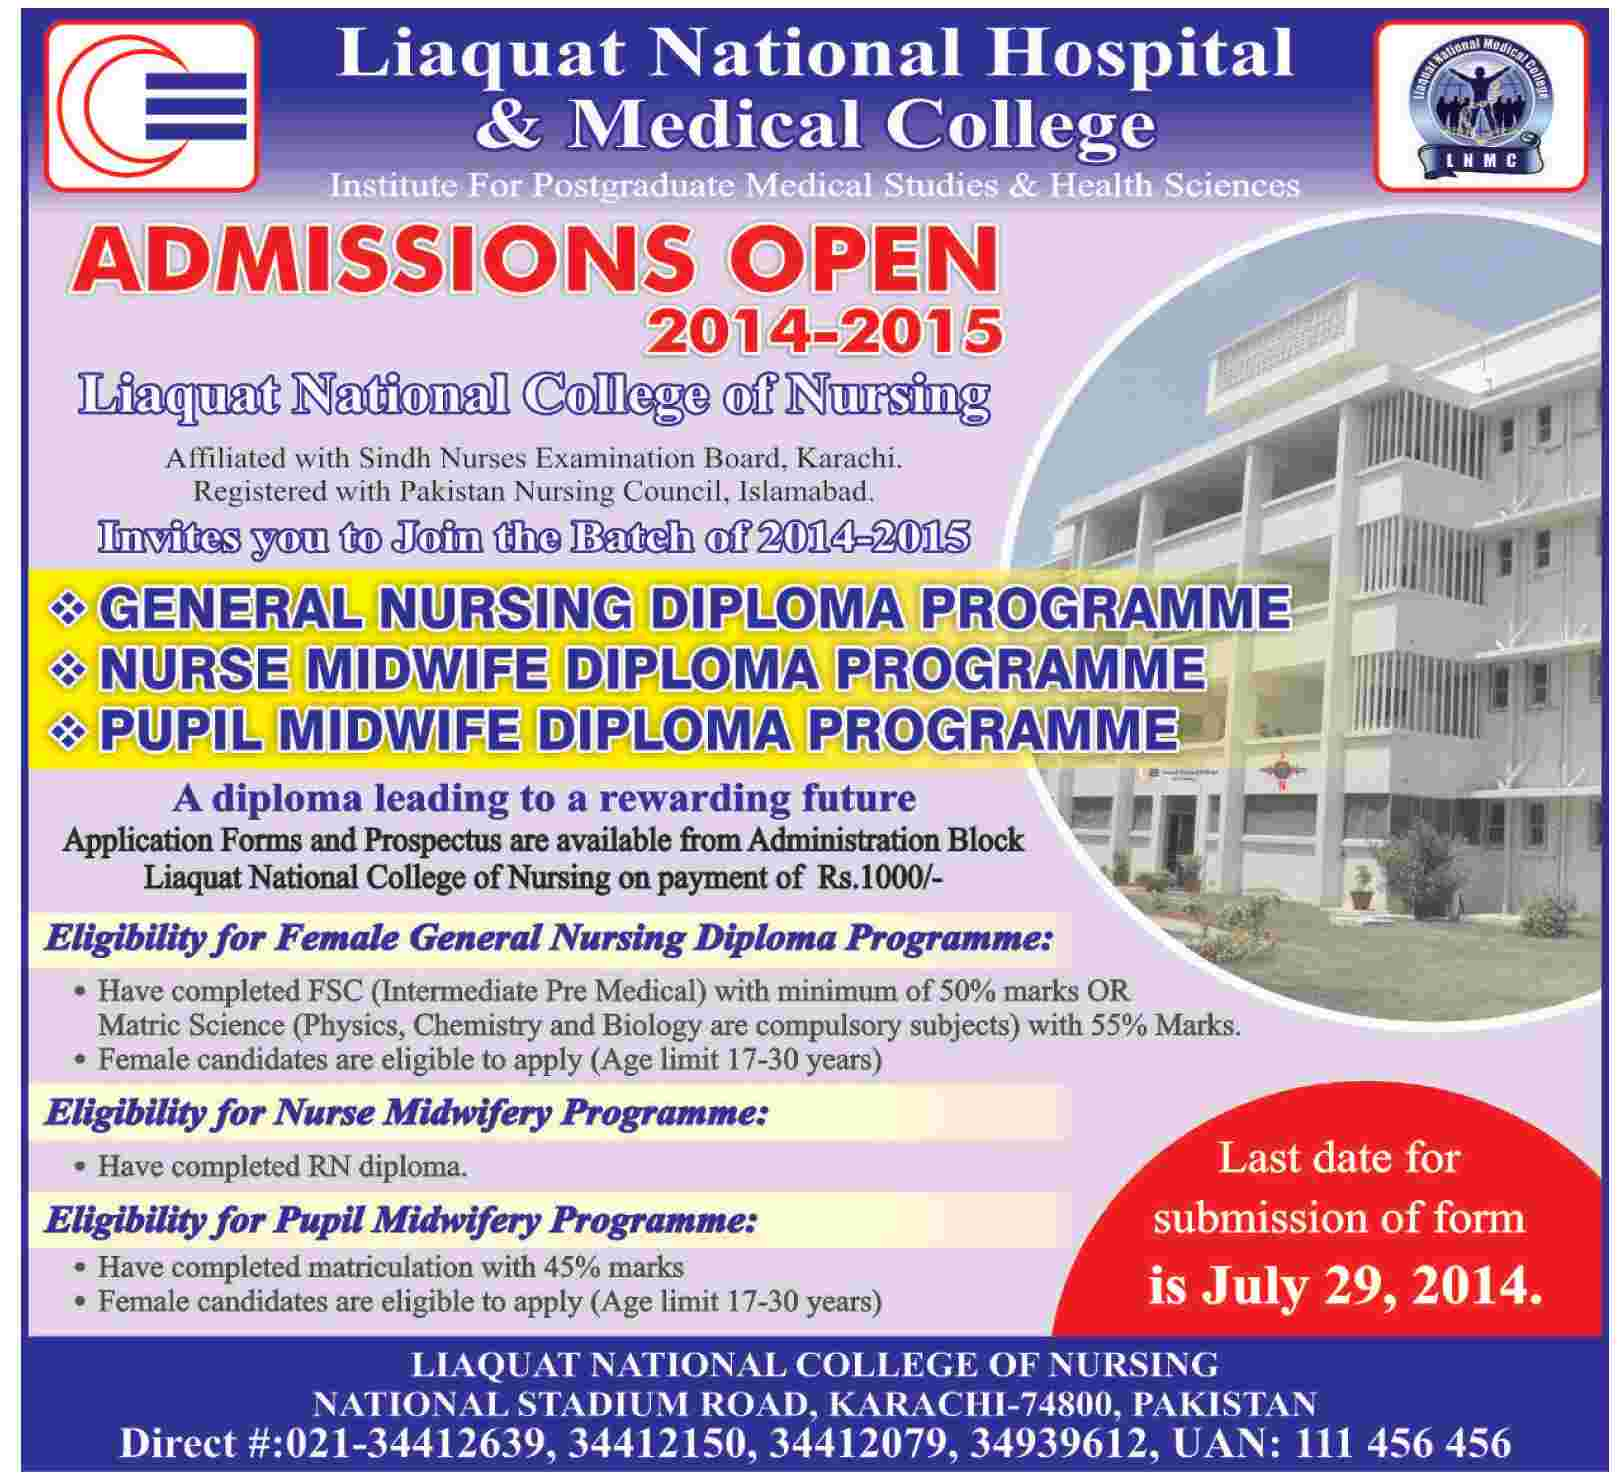 Liaquat National College of Nursing Karachi Admission Notice 2014 for General Nursing Diploma, Nurse Midwife Diploma, Pupil Midwife Diploma